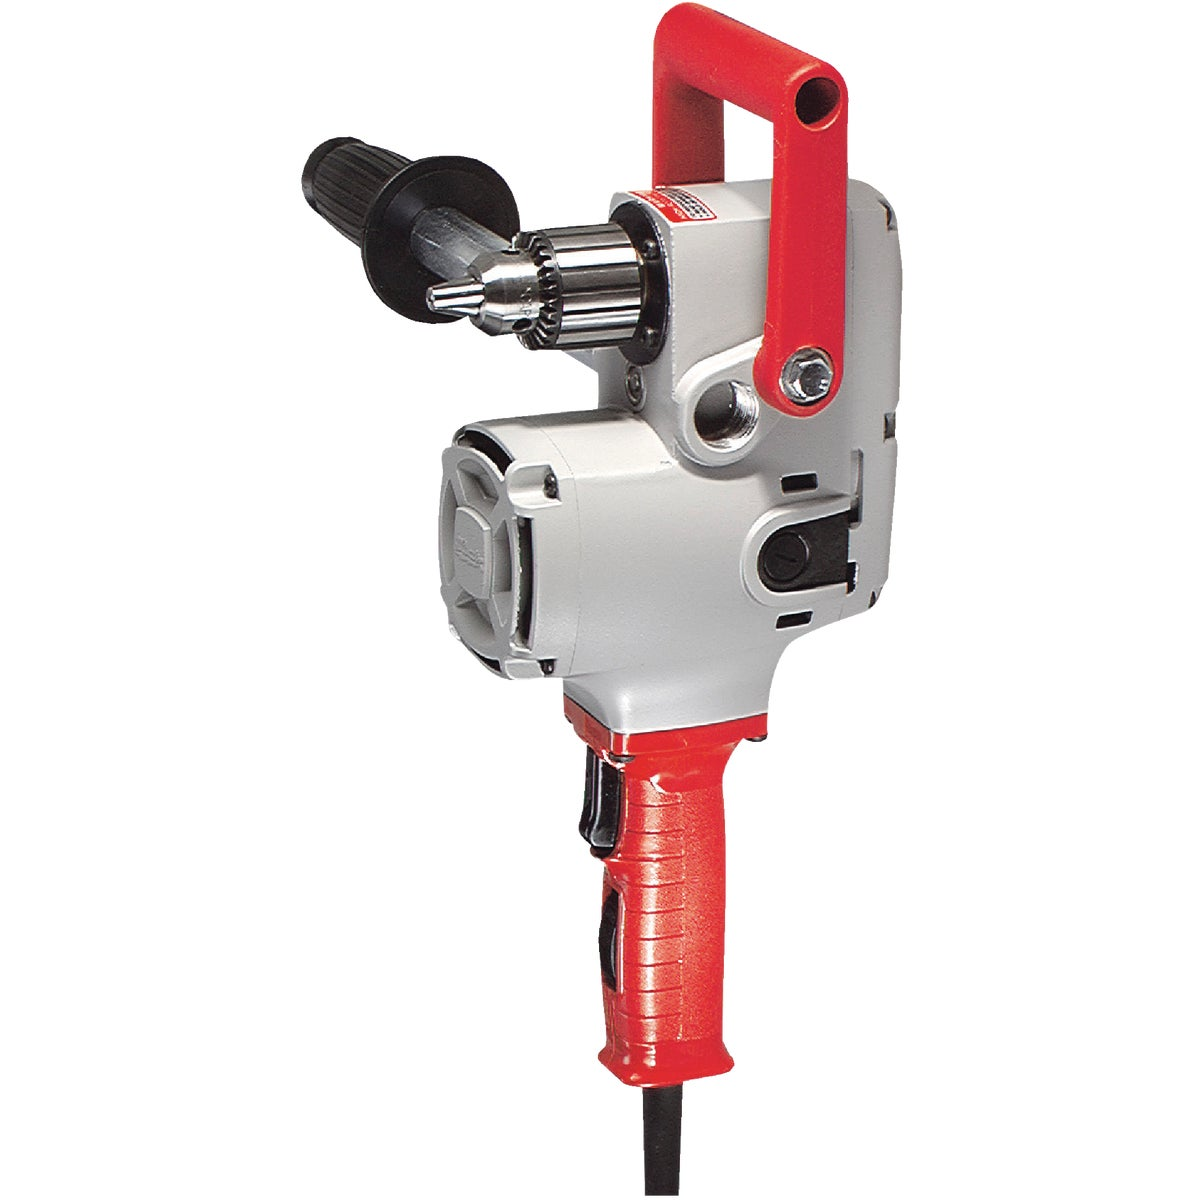 "1/2"" HOLE HAWG DRILL KIT - 1676-6 by Milwaukee Elec Tool"